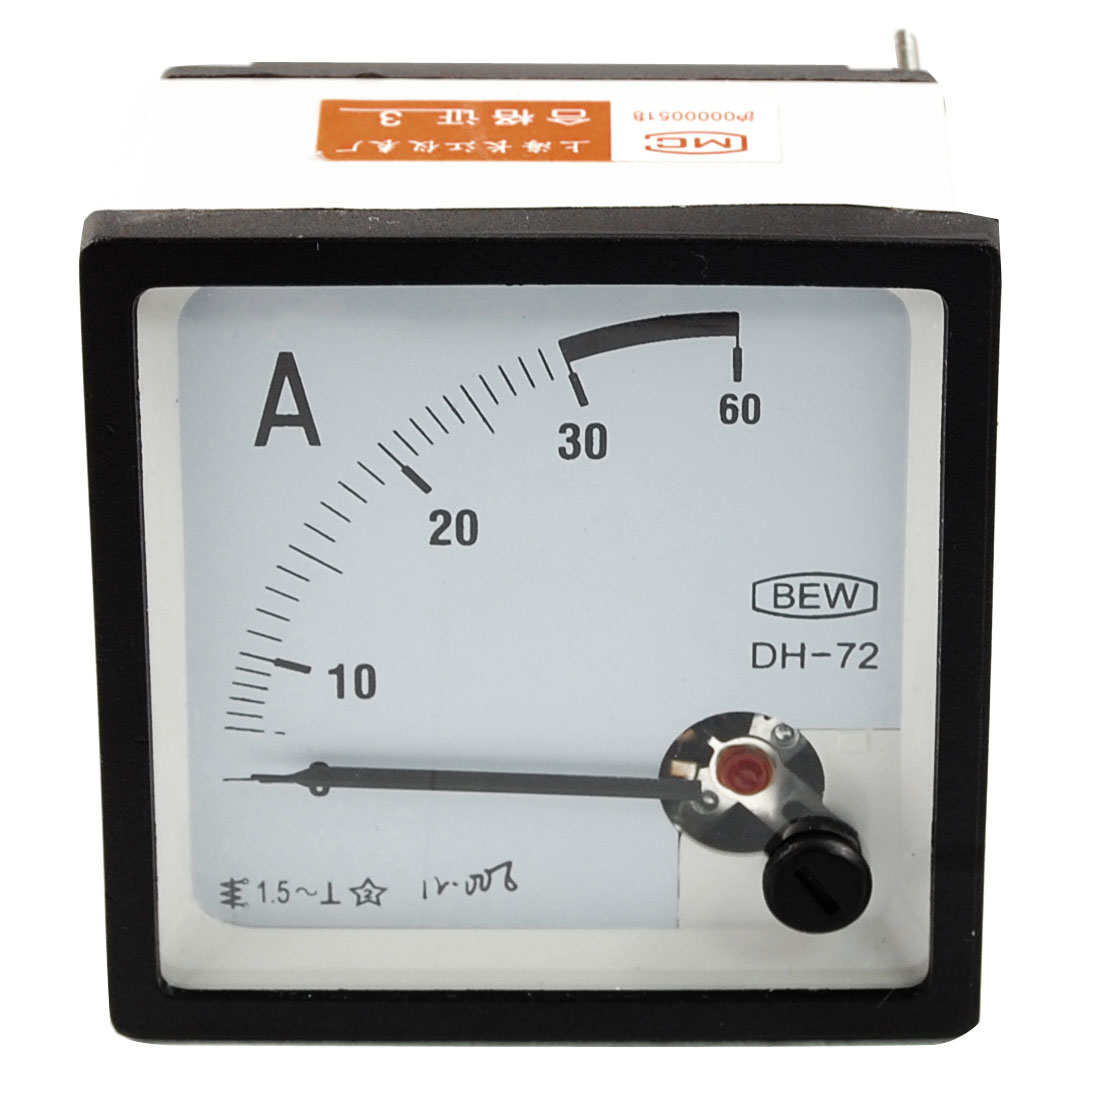 AC DC 0-30A Class 1.5 Accuracy Analog Square Panel Meter Ammeter DH72